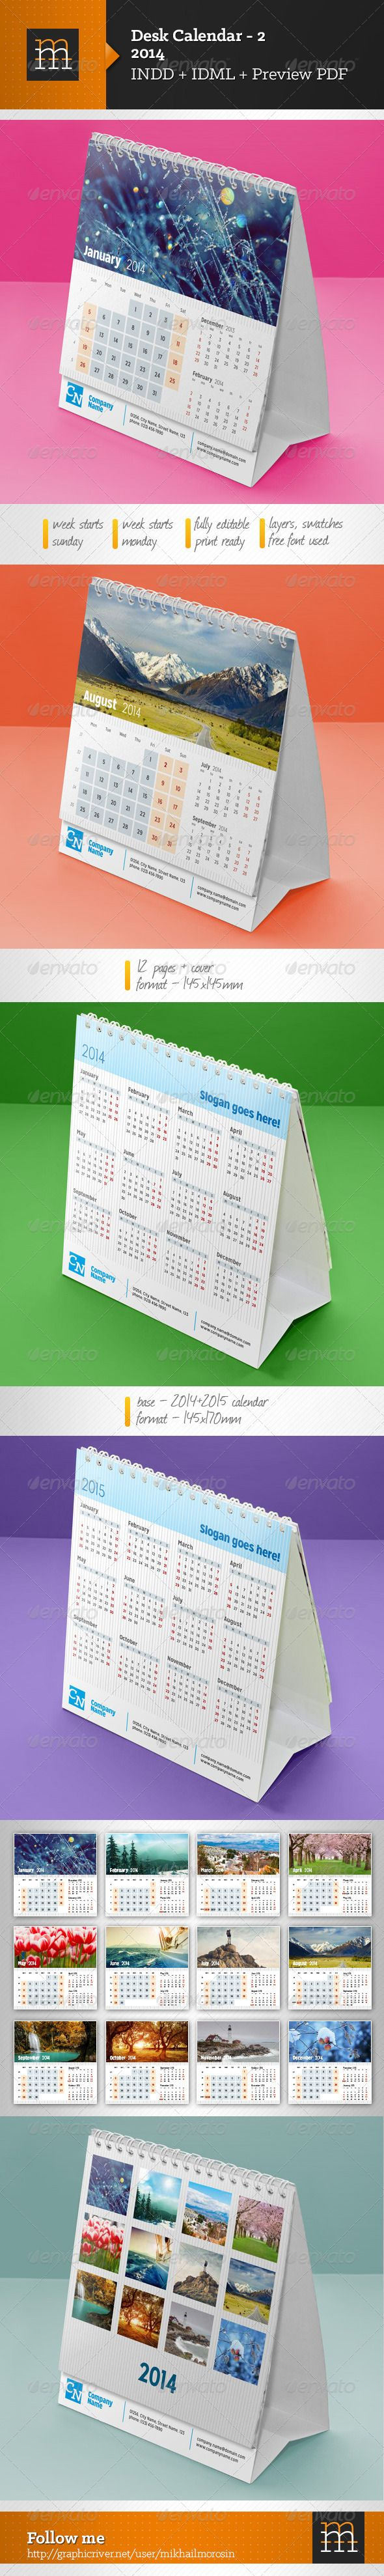 Best Calendar Images On   Calendar Templates